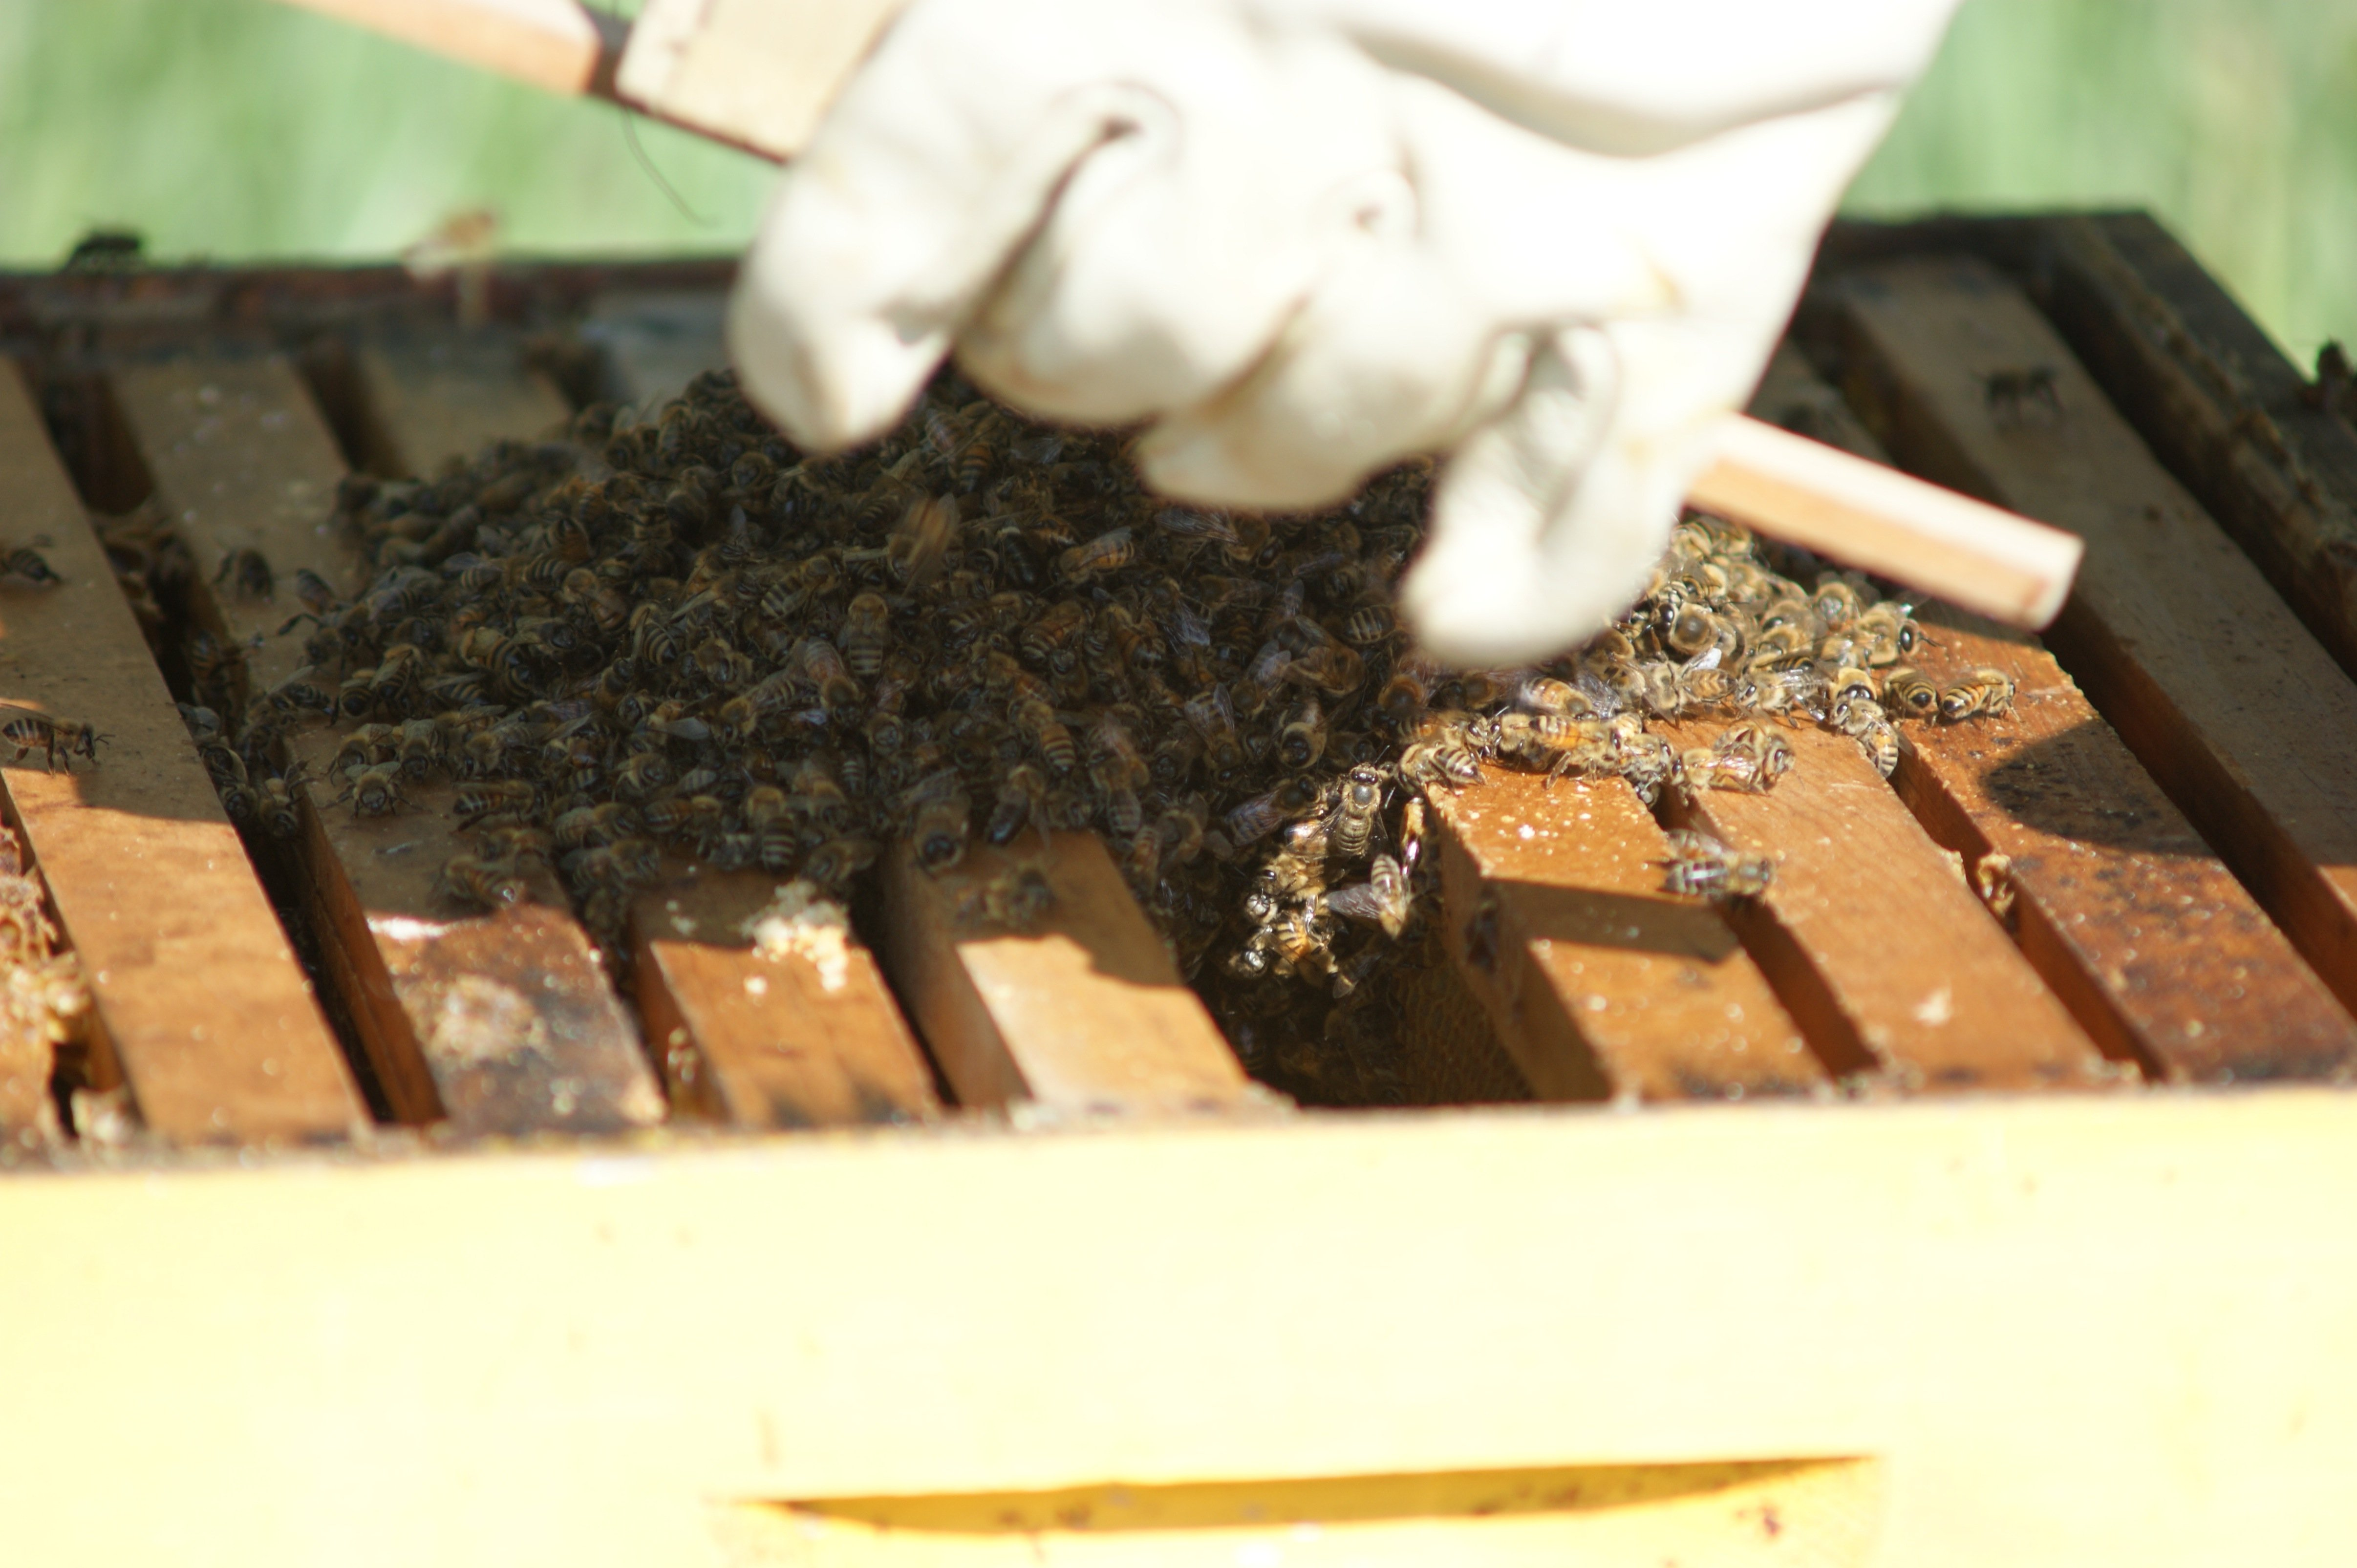 bees go into hive The last couple of days...